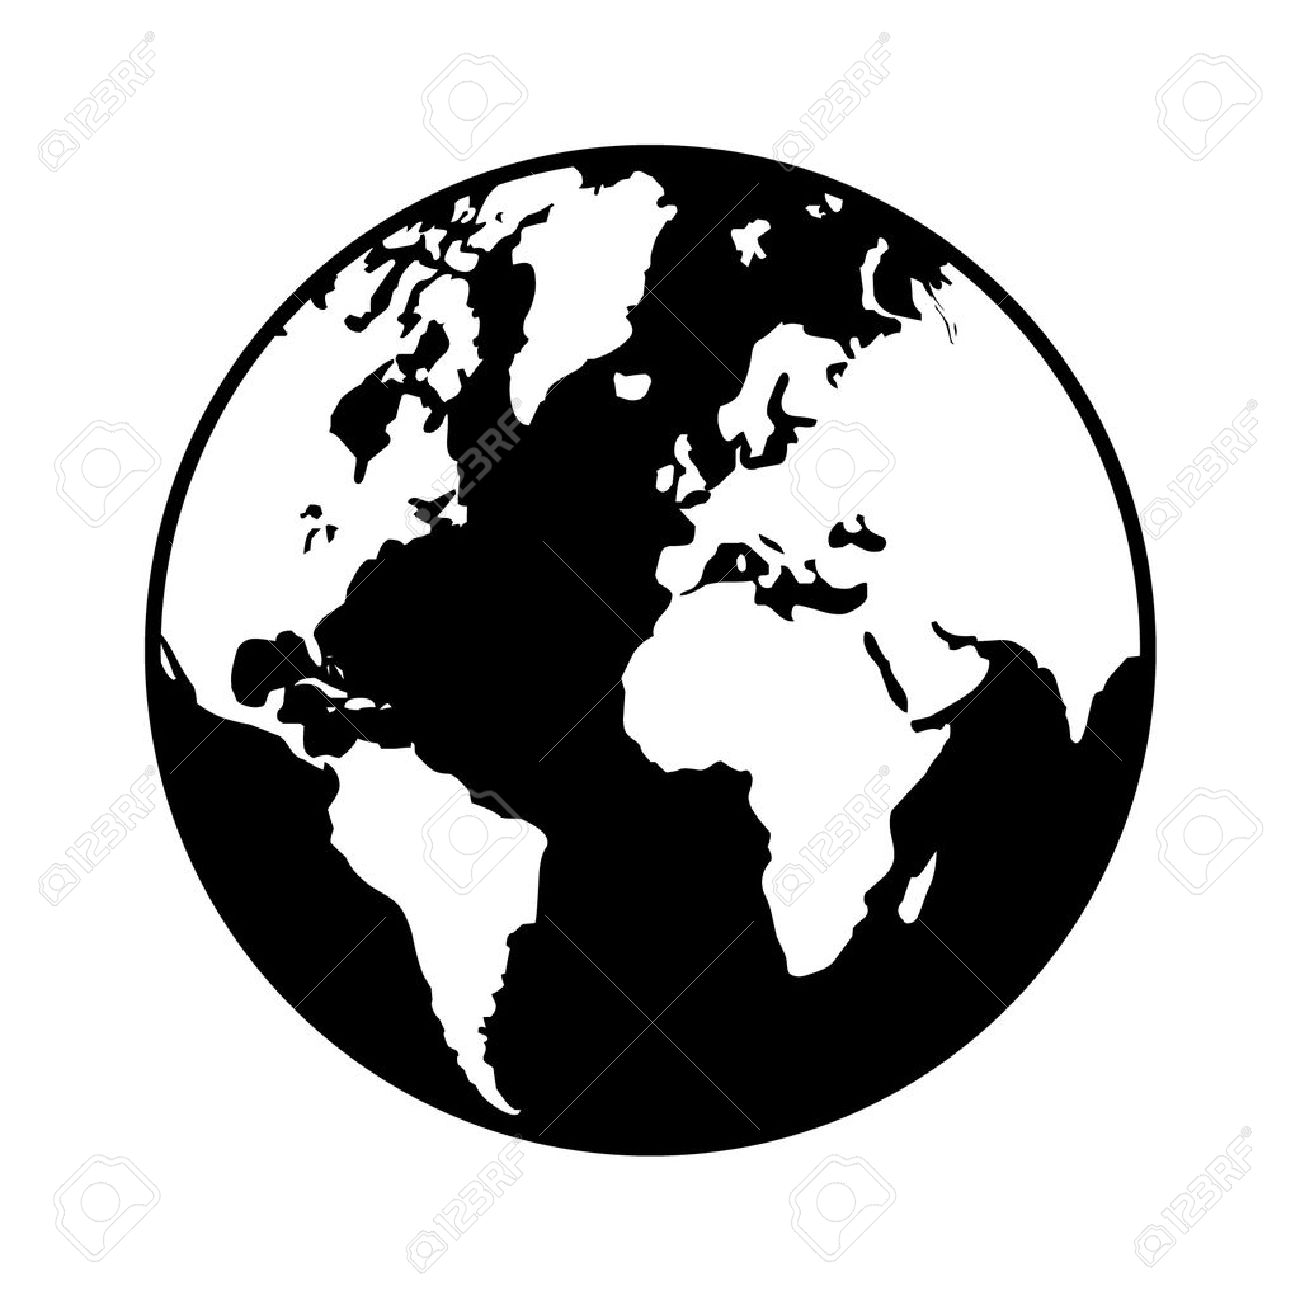 World globe map flat icon for apps and websites royalty free world globe map flat icon for apps and websites stock vector 42614015 gumiabroncs Images